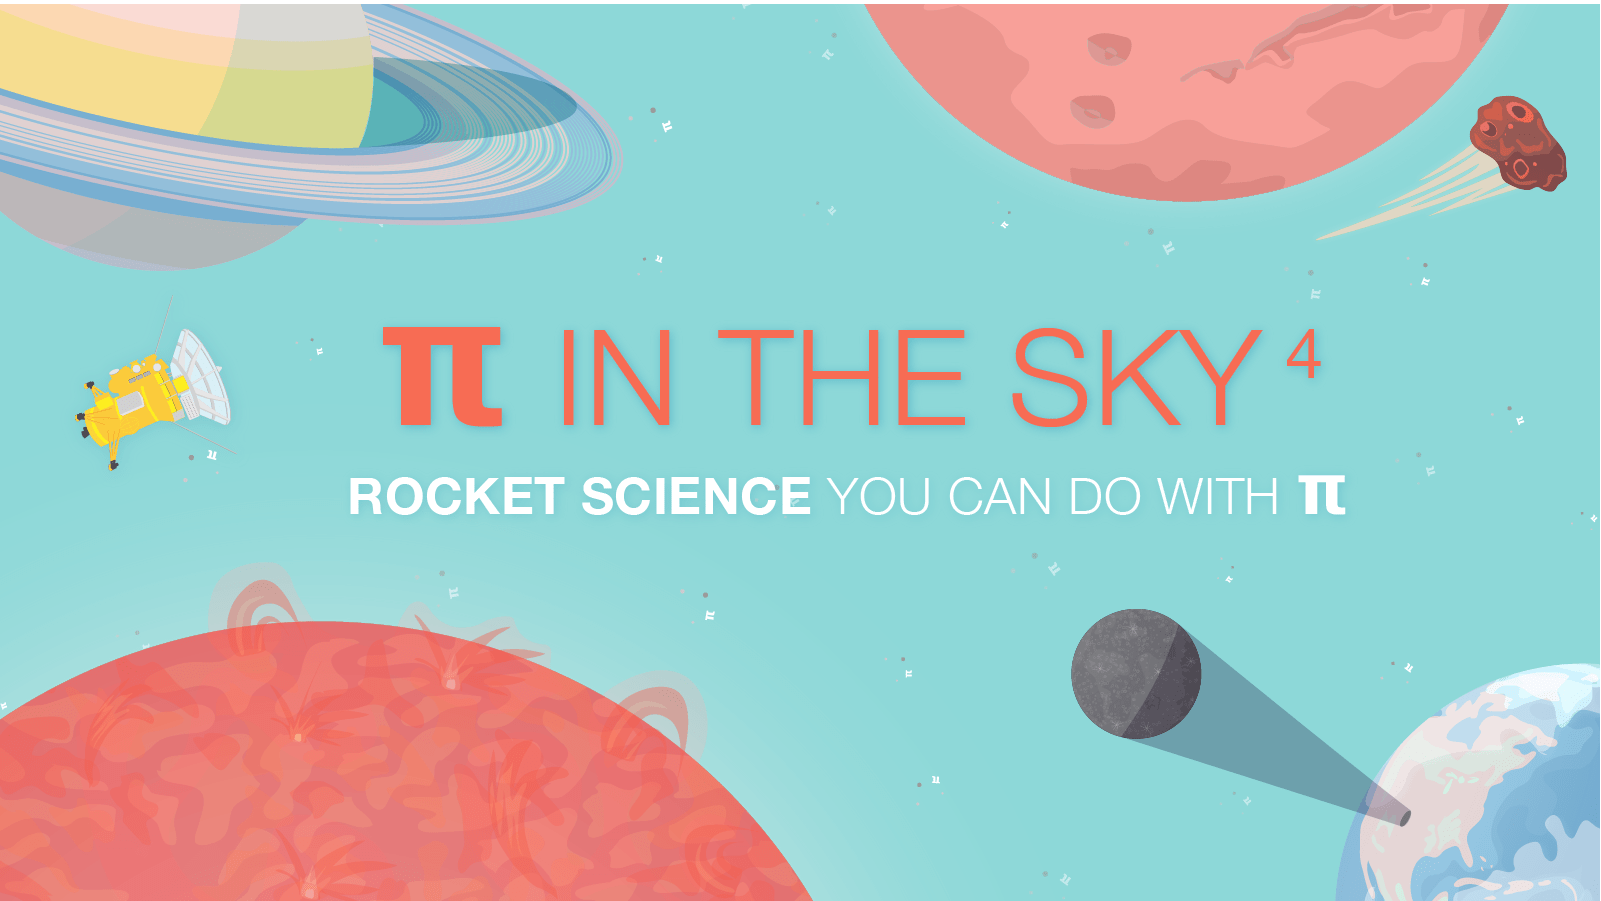 Pi In The Sky 4 Activity